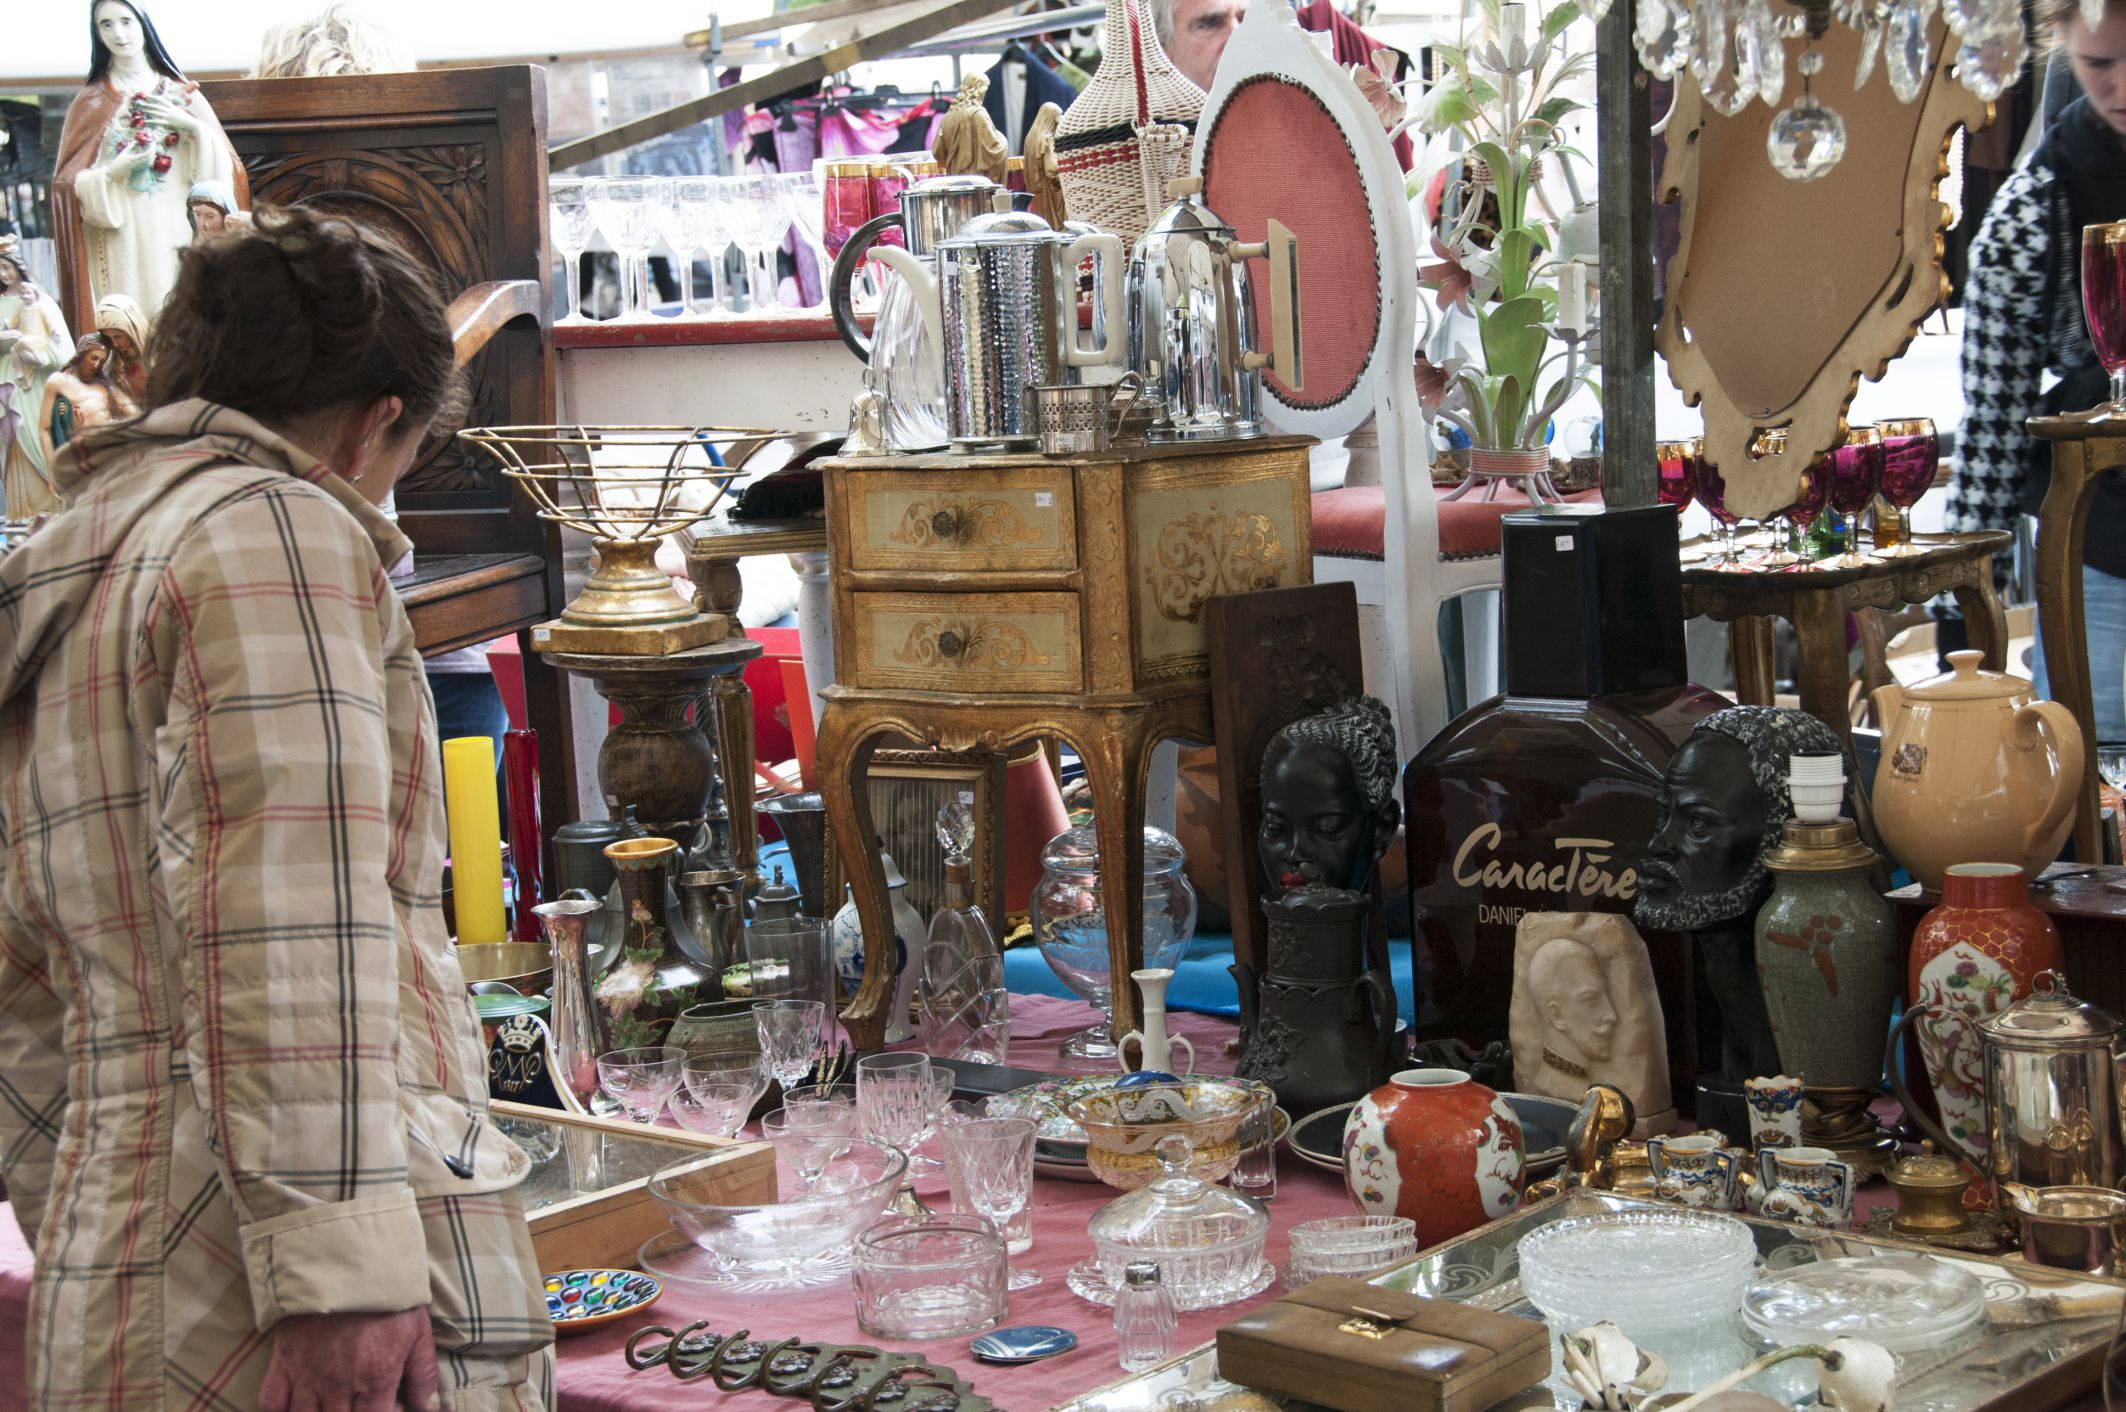 yard sale style 7 things to shop for to decorate on the.htm visit antique alley yard sale in texas  visit antique alley yard sale in texas